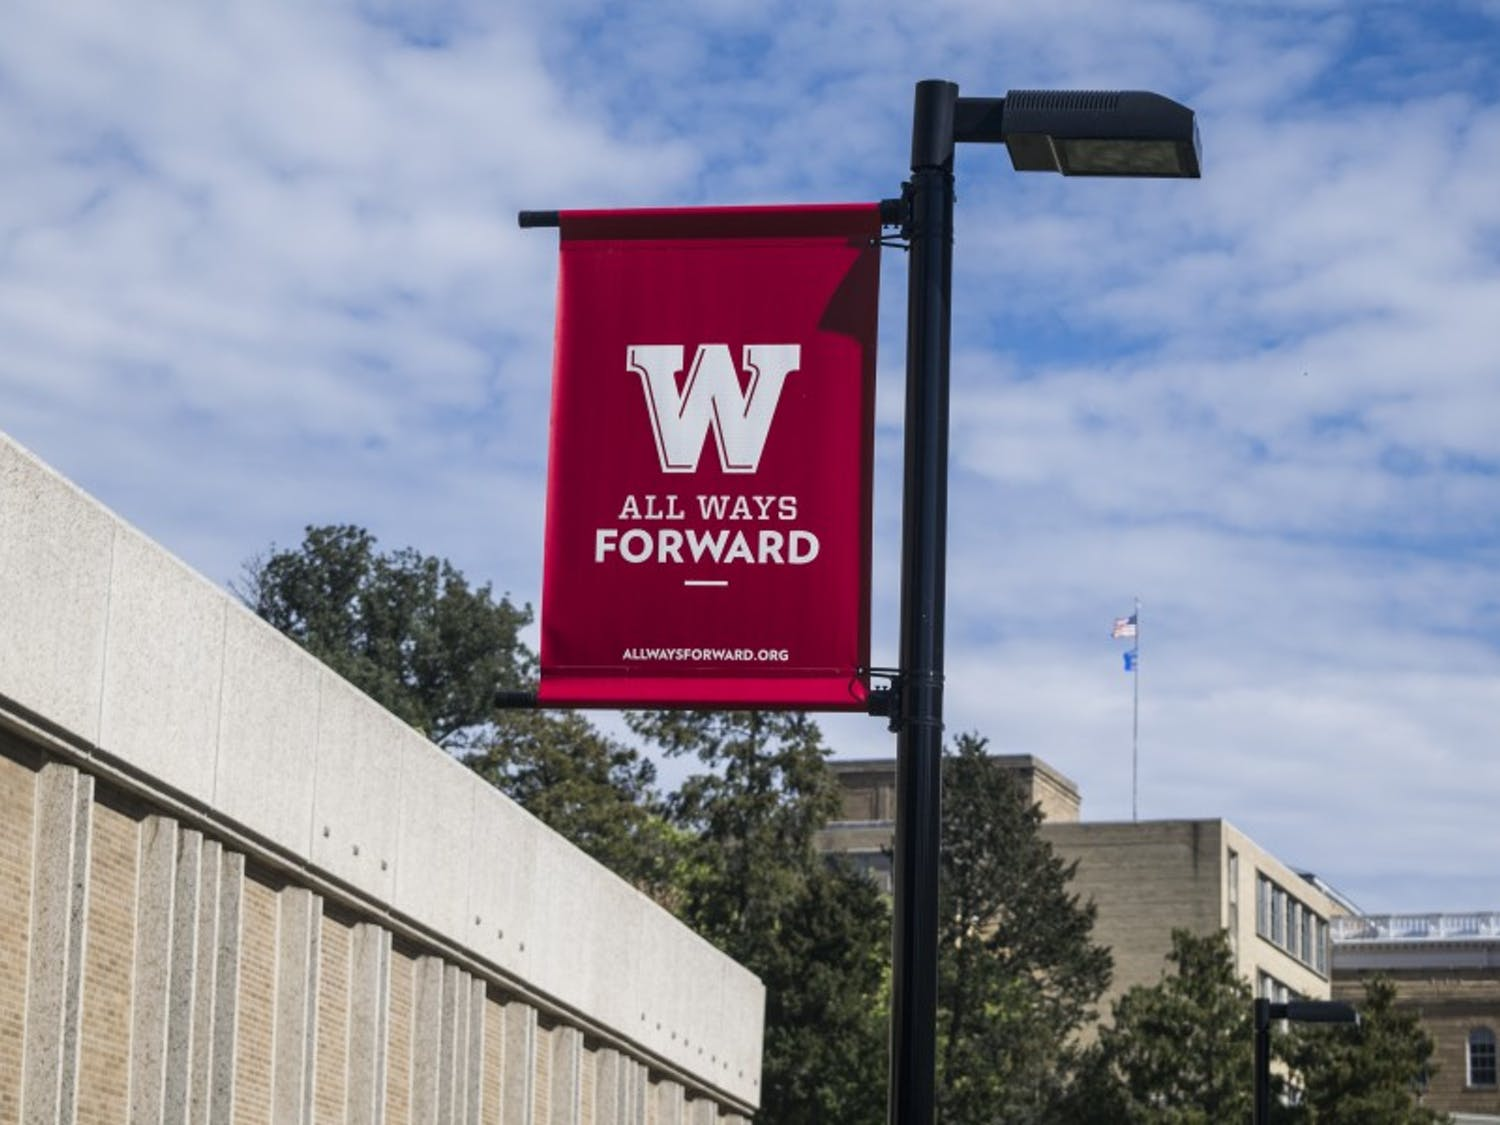 The $25 million gift from Ted and Mary Kellner will go towards the All Ways Forward campaign, a $3.2 billion dollar campaign launched in 2015 to fund various departments across the university.